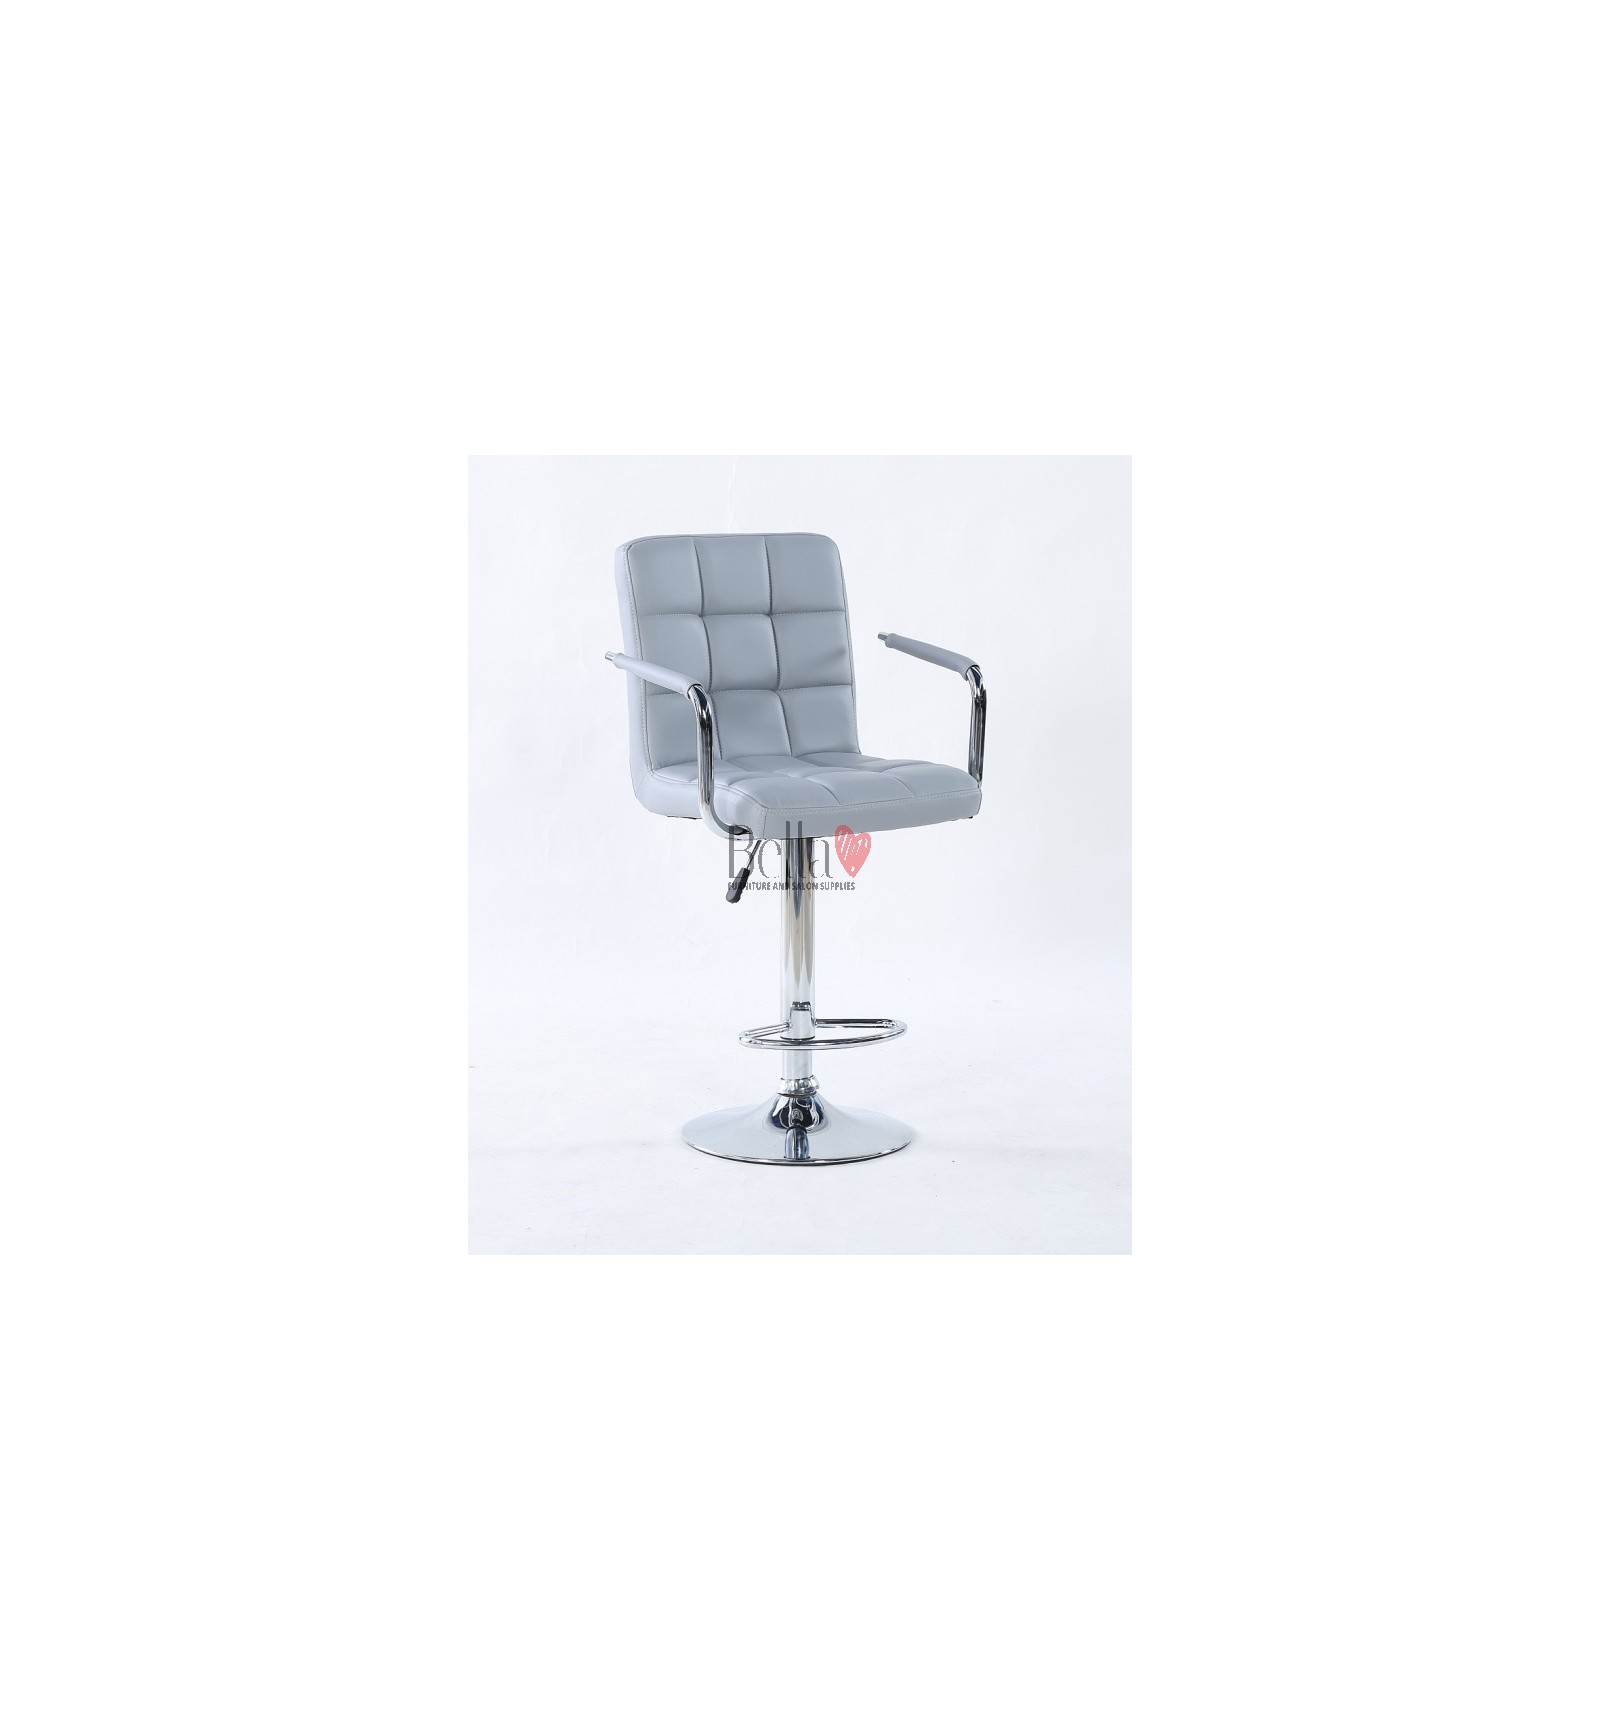 Grey Elegant Makeup And Reception High Chairs For Sale